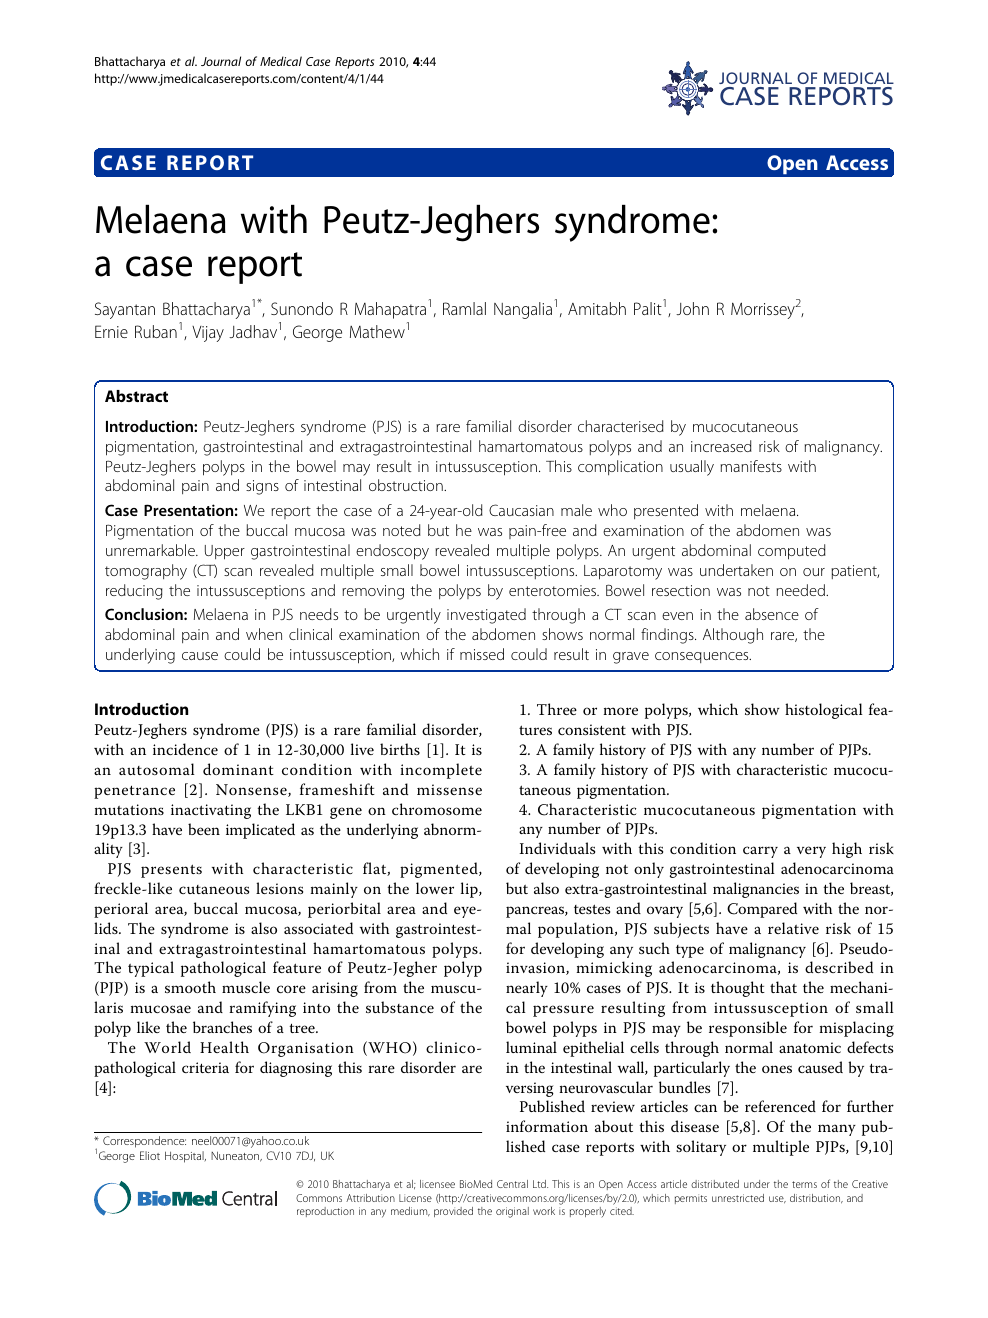 Enjoyable Melaena With Peutz Jeghers Syndrome A Case Report Topic Theyellowbook Wood Chair Design Ideas Theyellowbookinfo